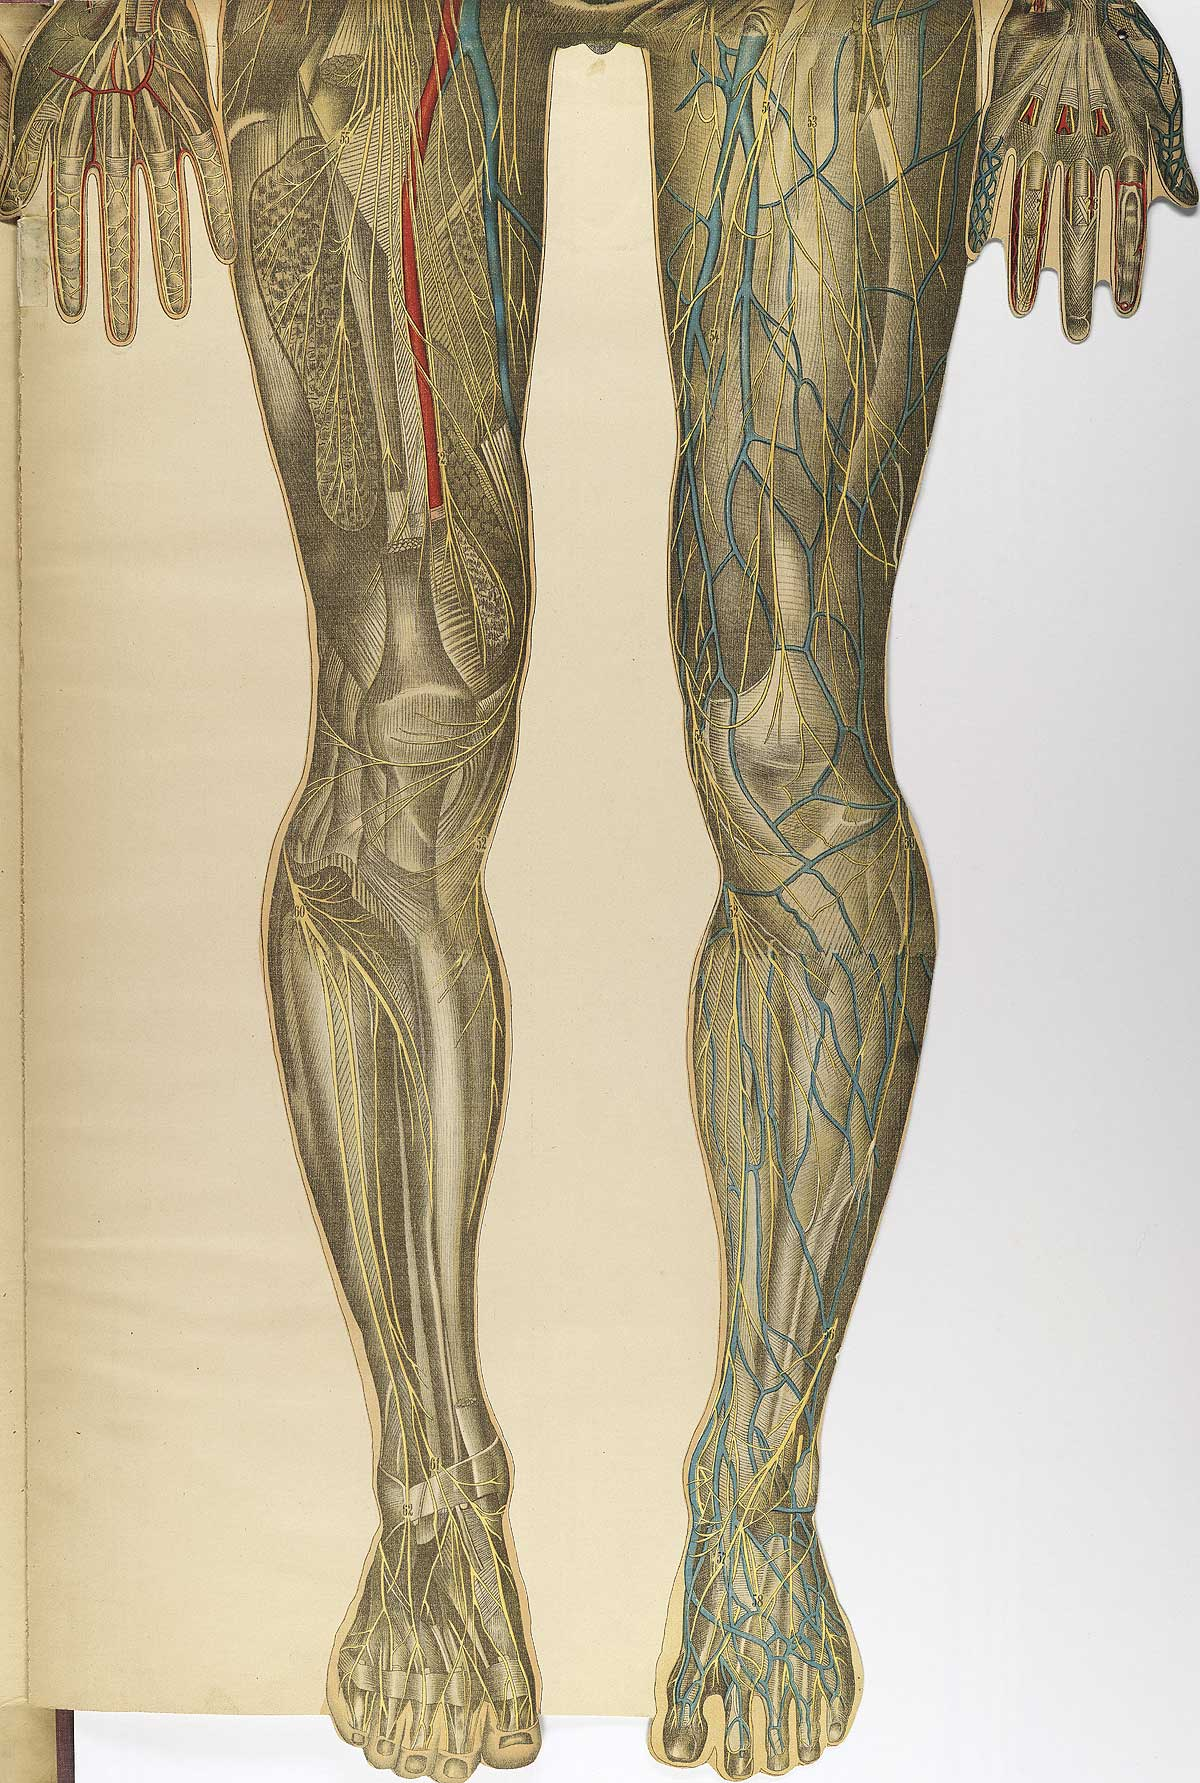 Vicon besides Cns Lg furthermore Evkvu Agy K Ym Dayia V Jugularis Interna Dextra also  moreover Bougle Bottom. on about the human body system